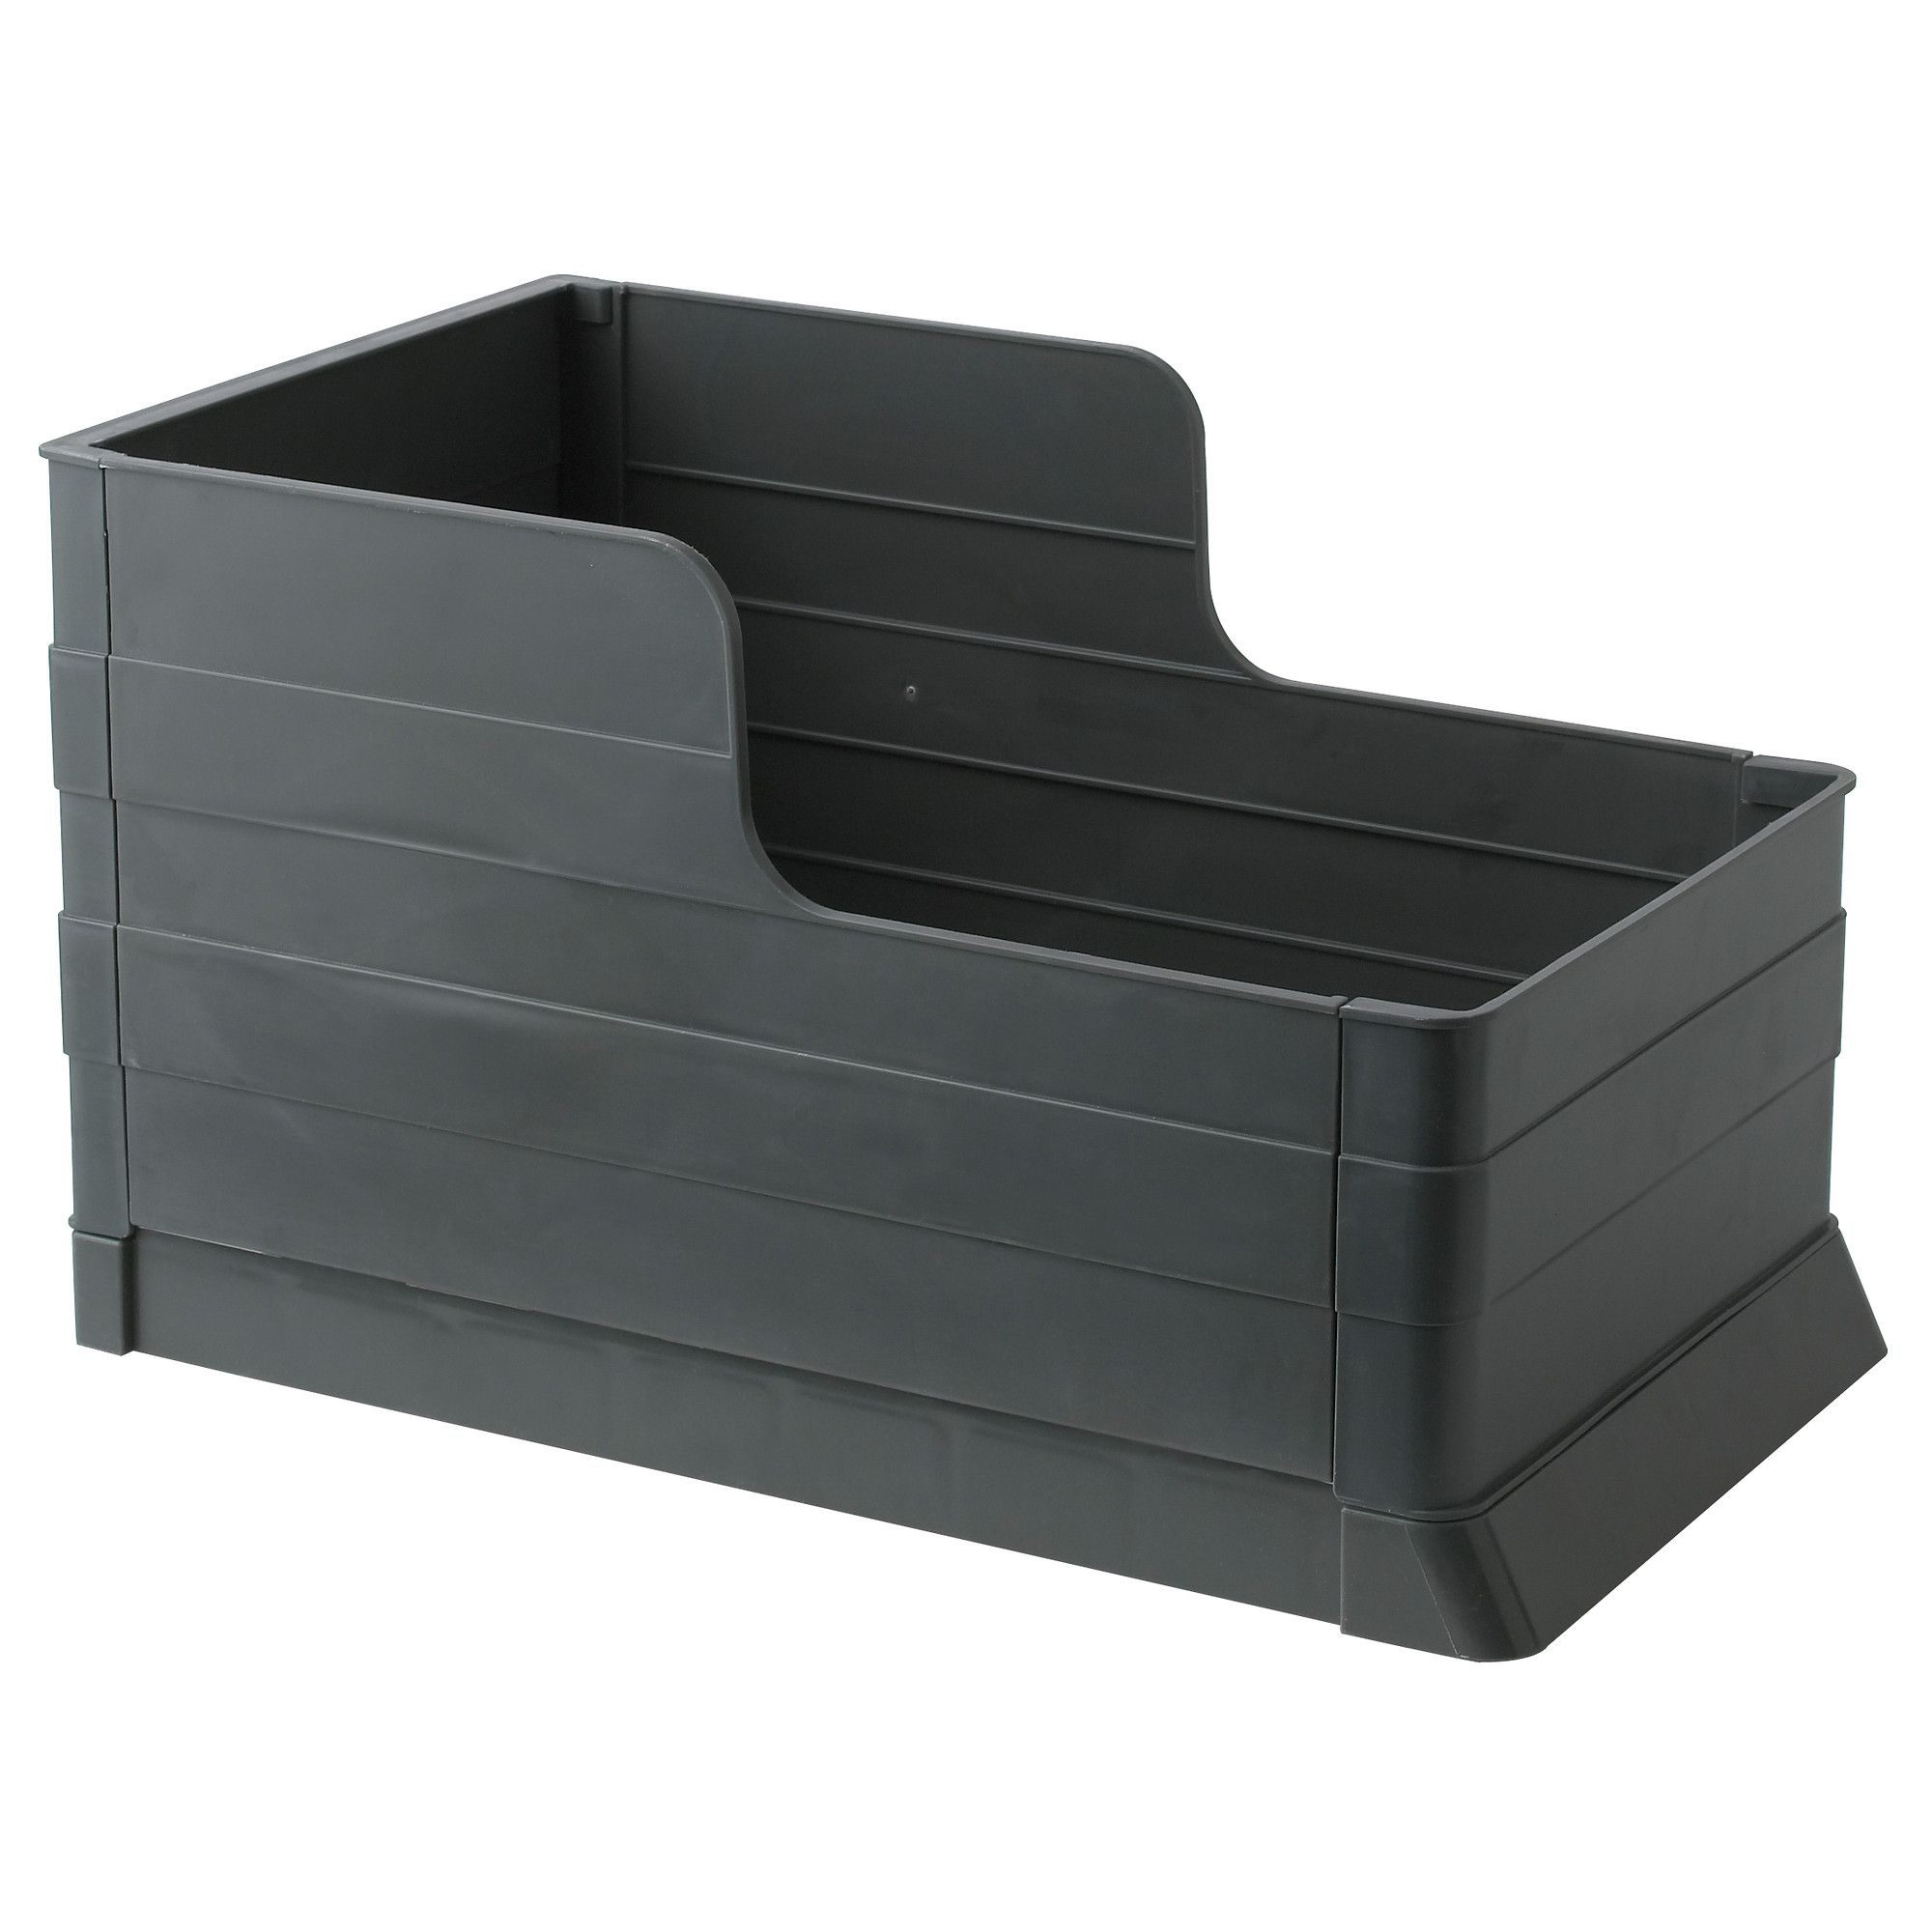 RATIONELL Pull-out waste sorting tray - IKEA | Kitchen ...